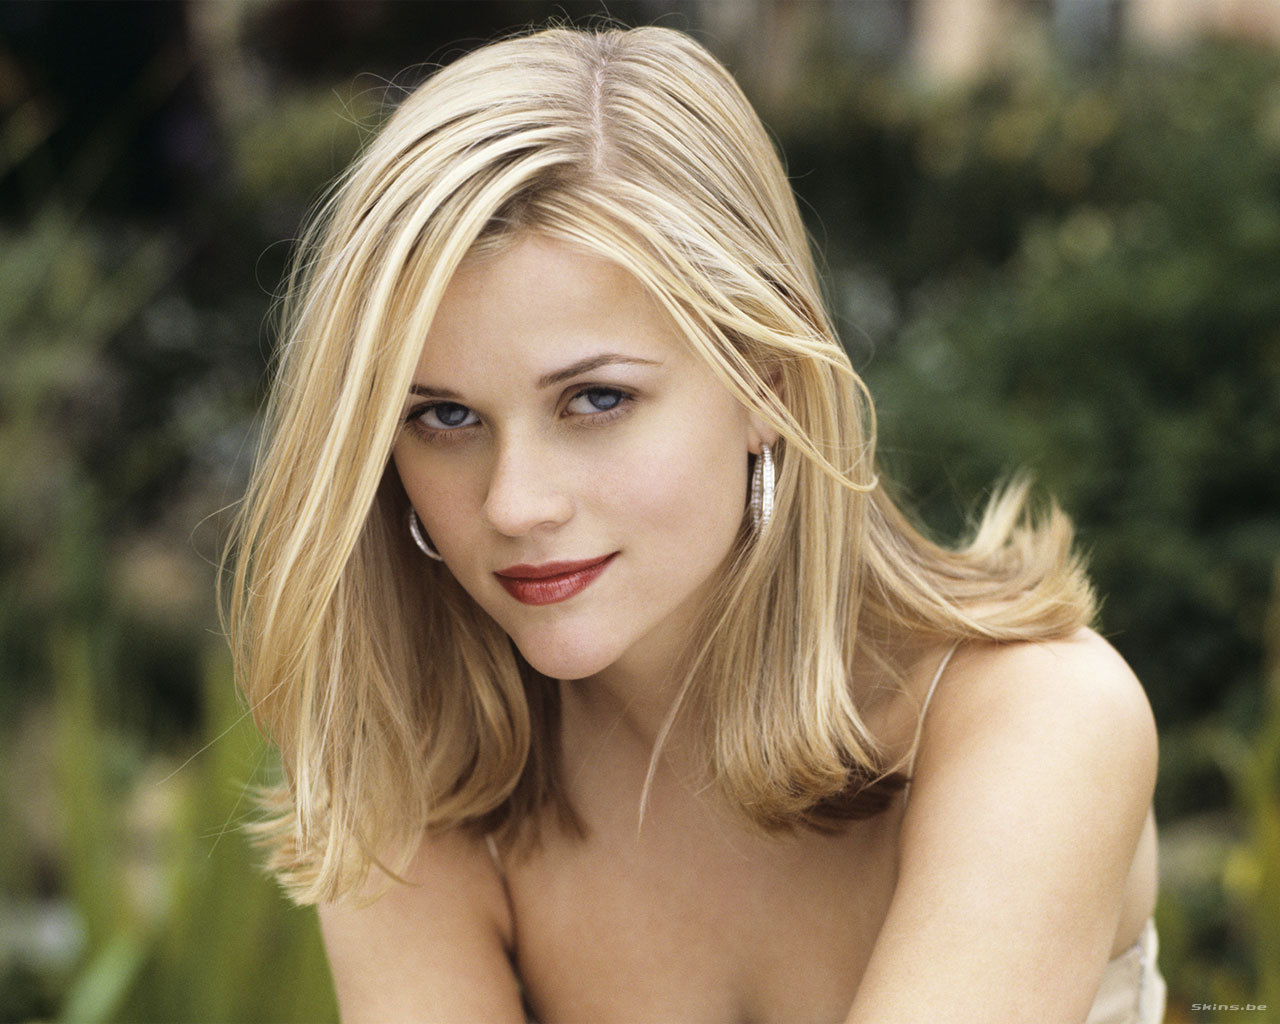 Reese Reese Witherspoon Wallpaper 3149268 Fanpop